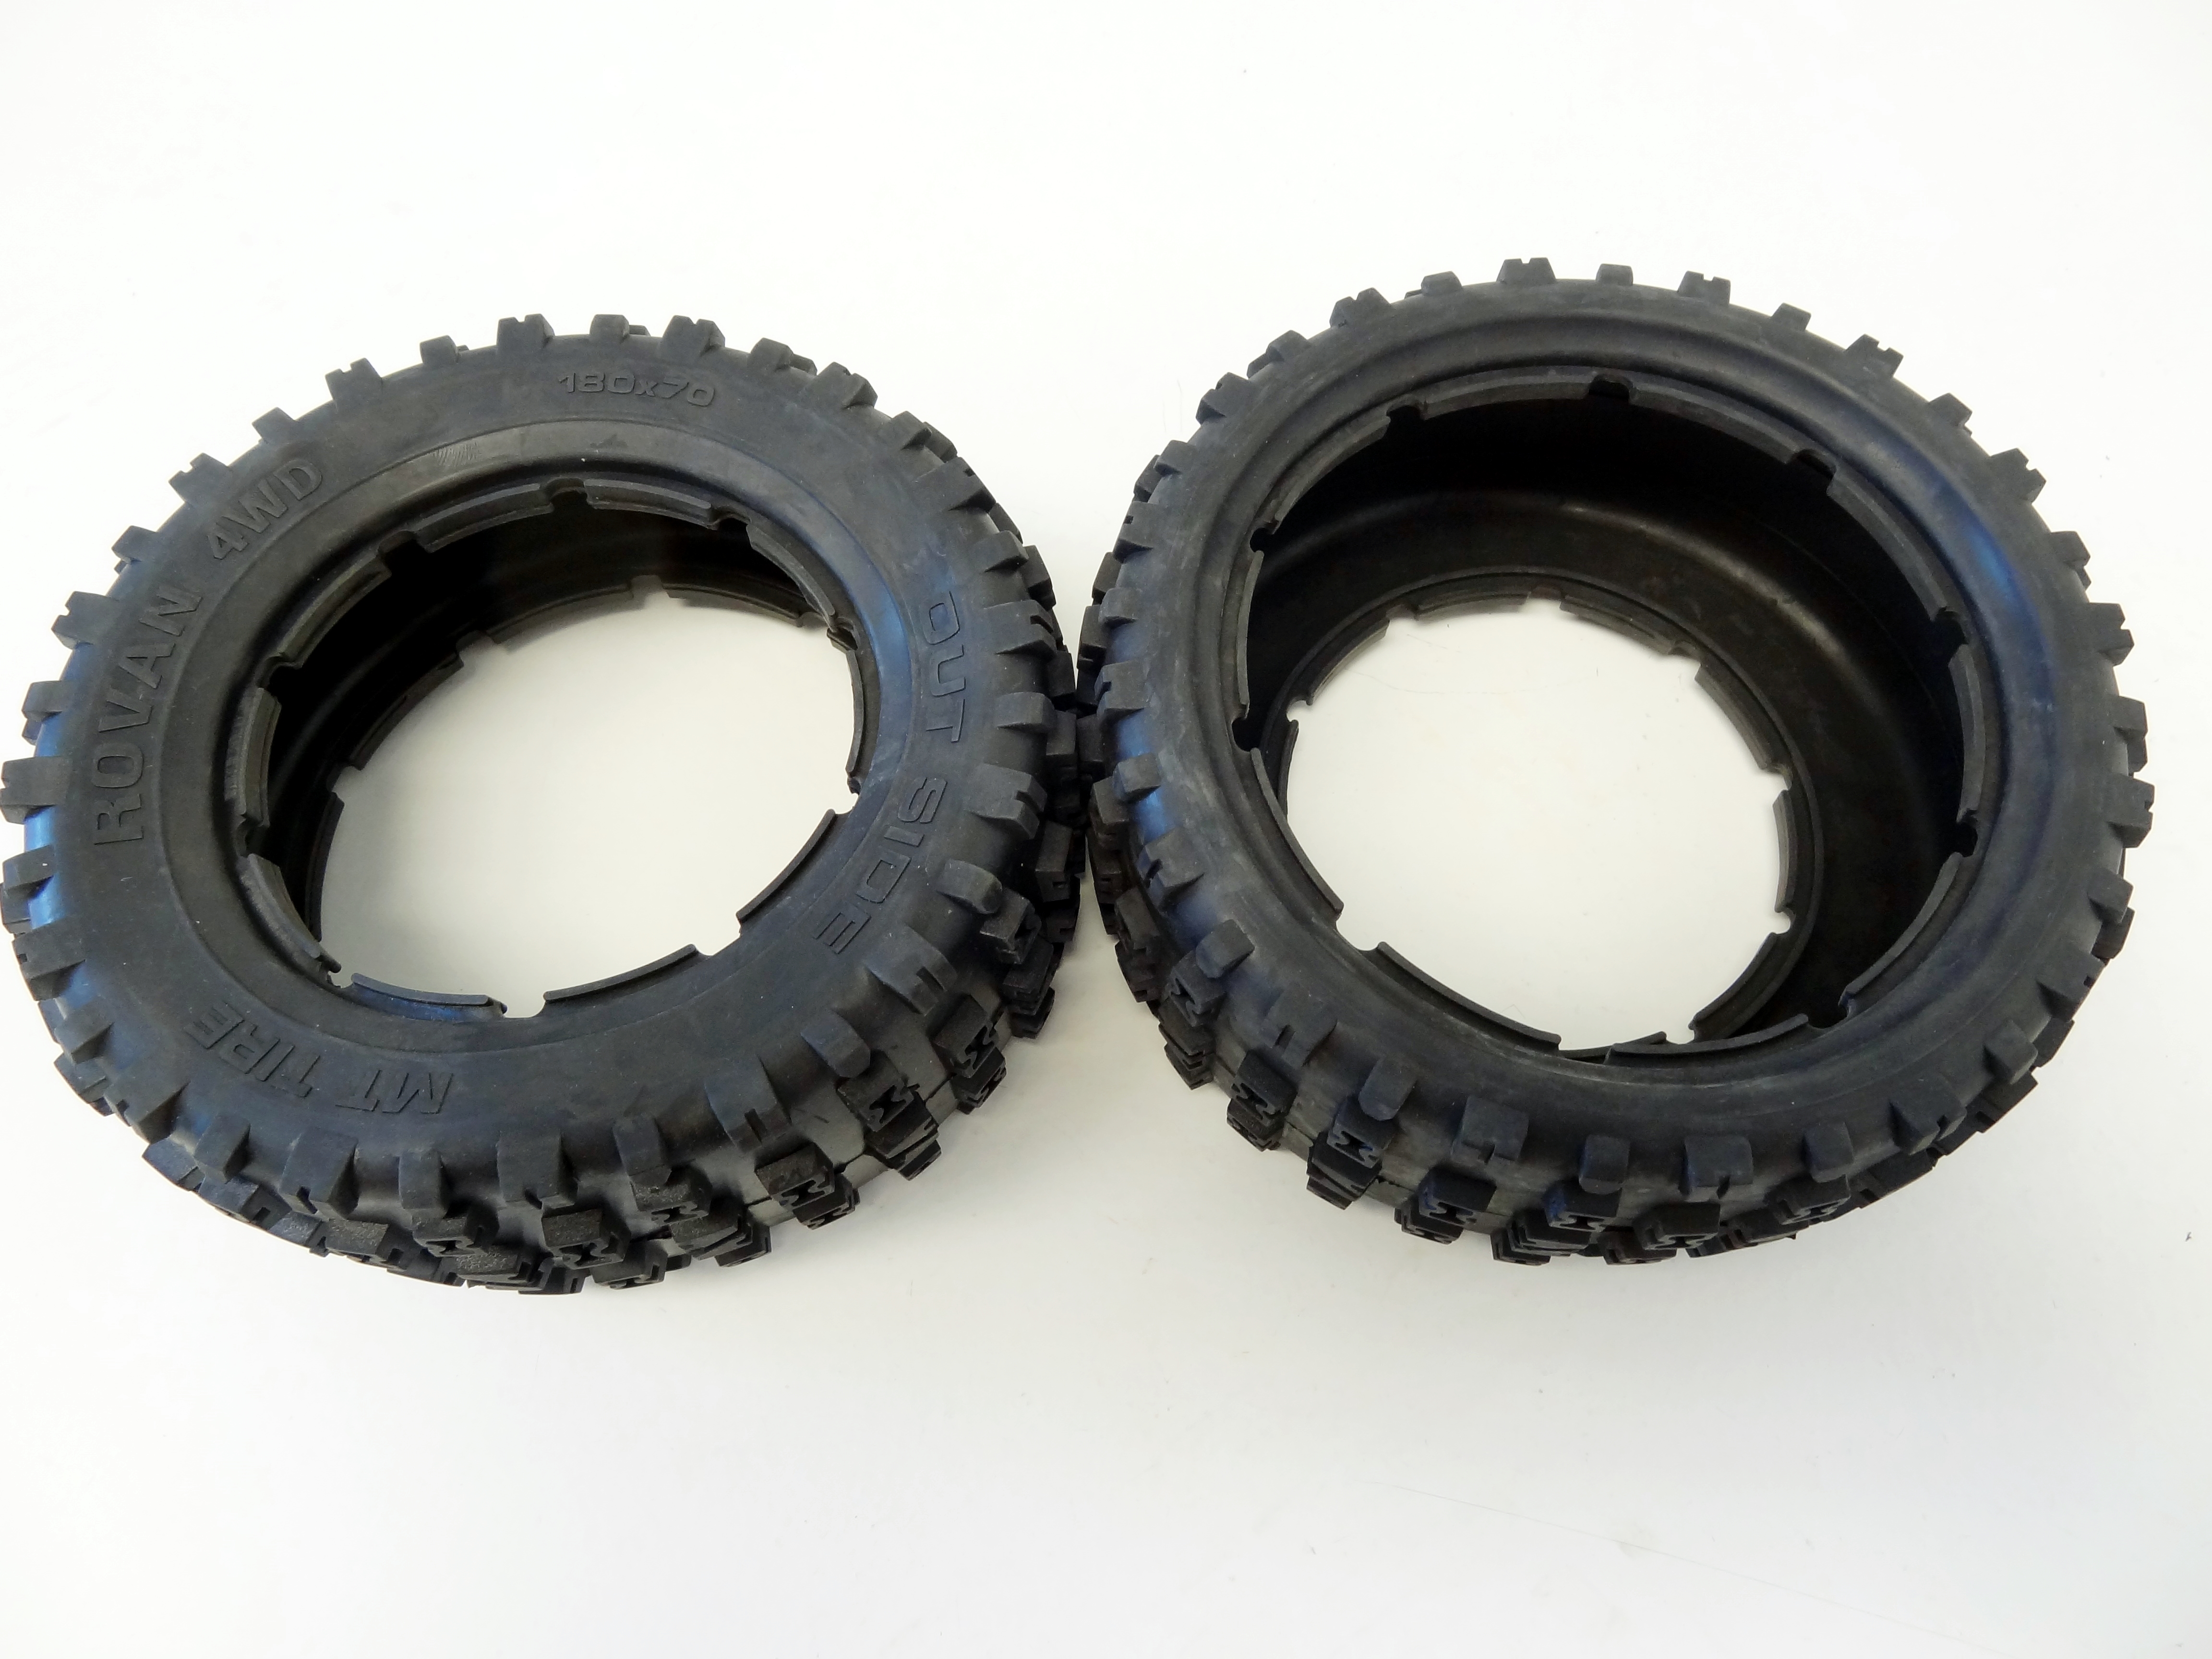 180X70 1//5 Rovan RC LT HD Belted Off Road Tires Fits Losi 5IVE-T King Motor X2